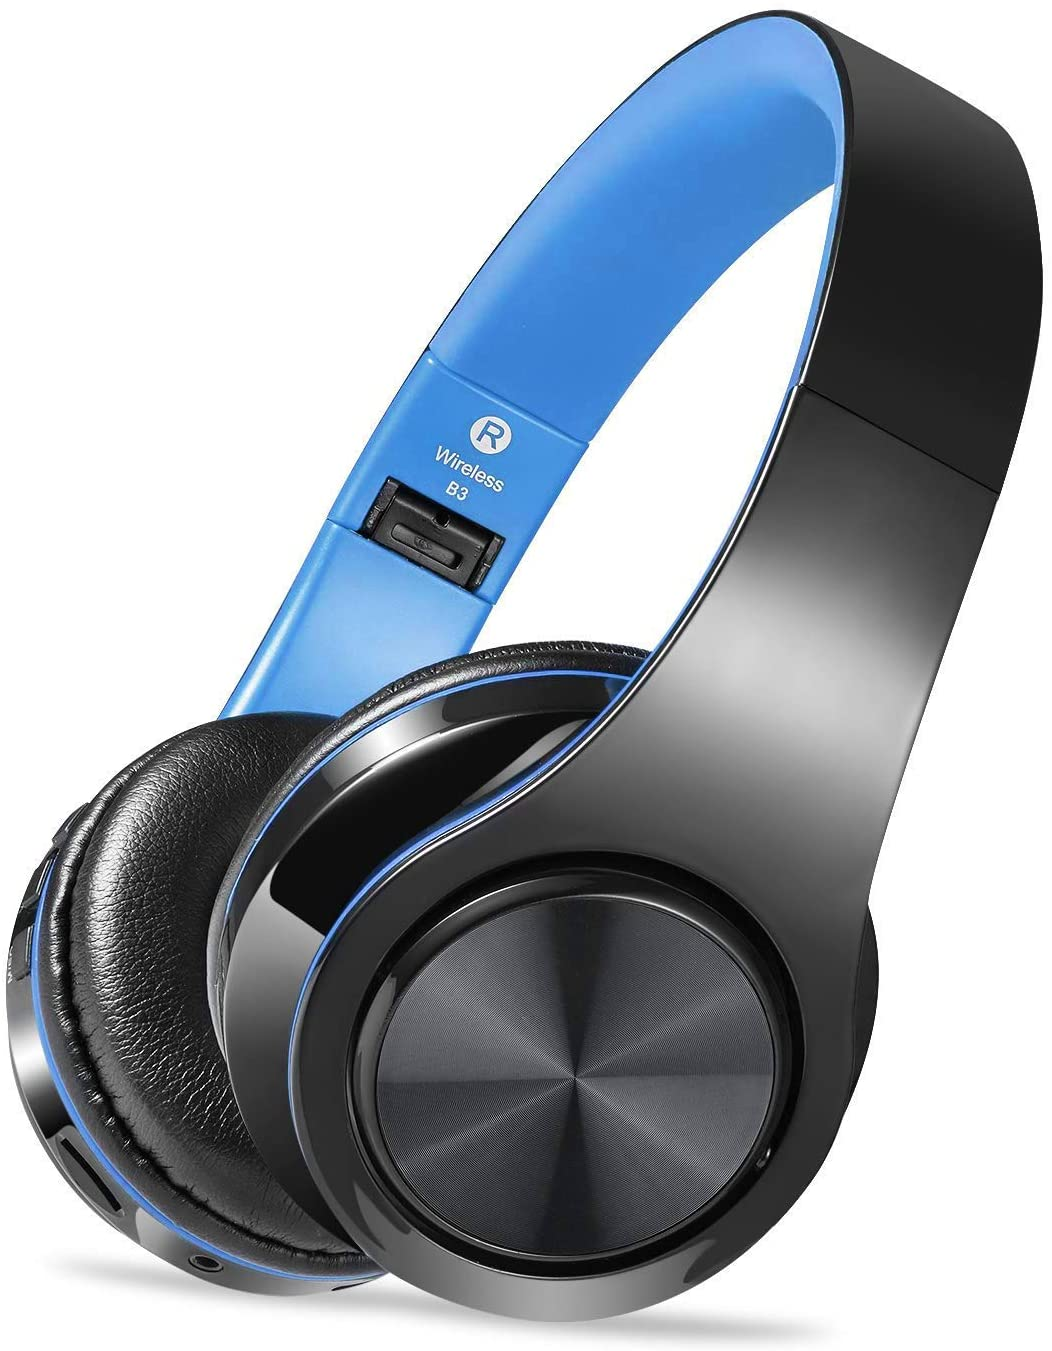 Wireless Headset with Mic, Foldable Bluetooth Headphone with 3.5mm Audio Jack, Built-in Noise Cancelling Microphone, Support for Plug-in Card, for PC, Phone(Black+Blue)